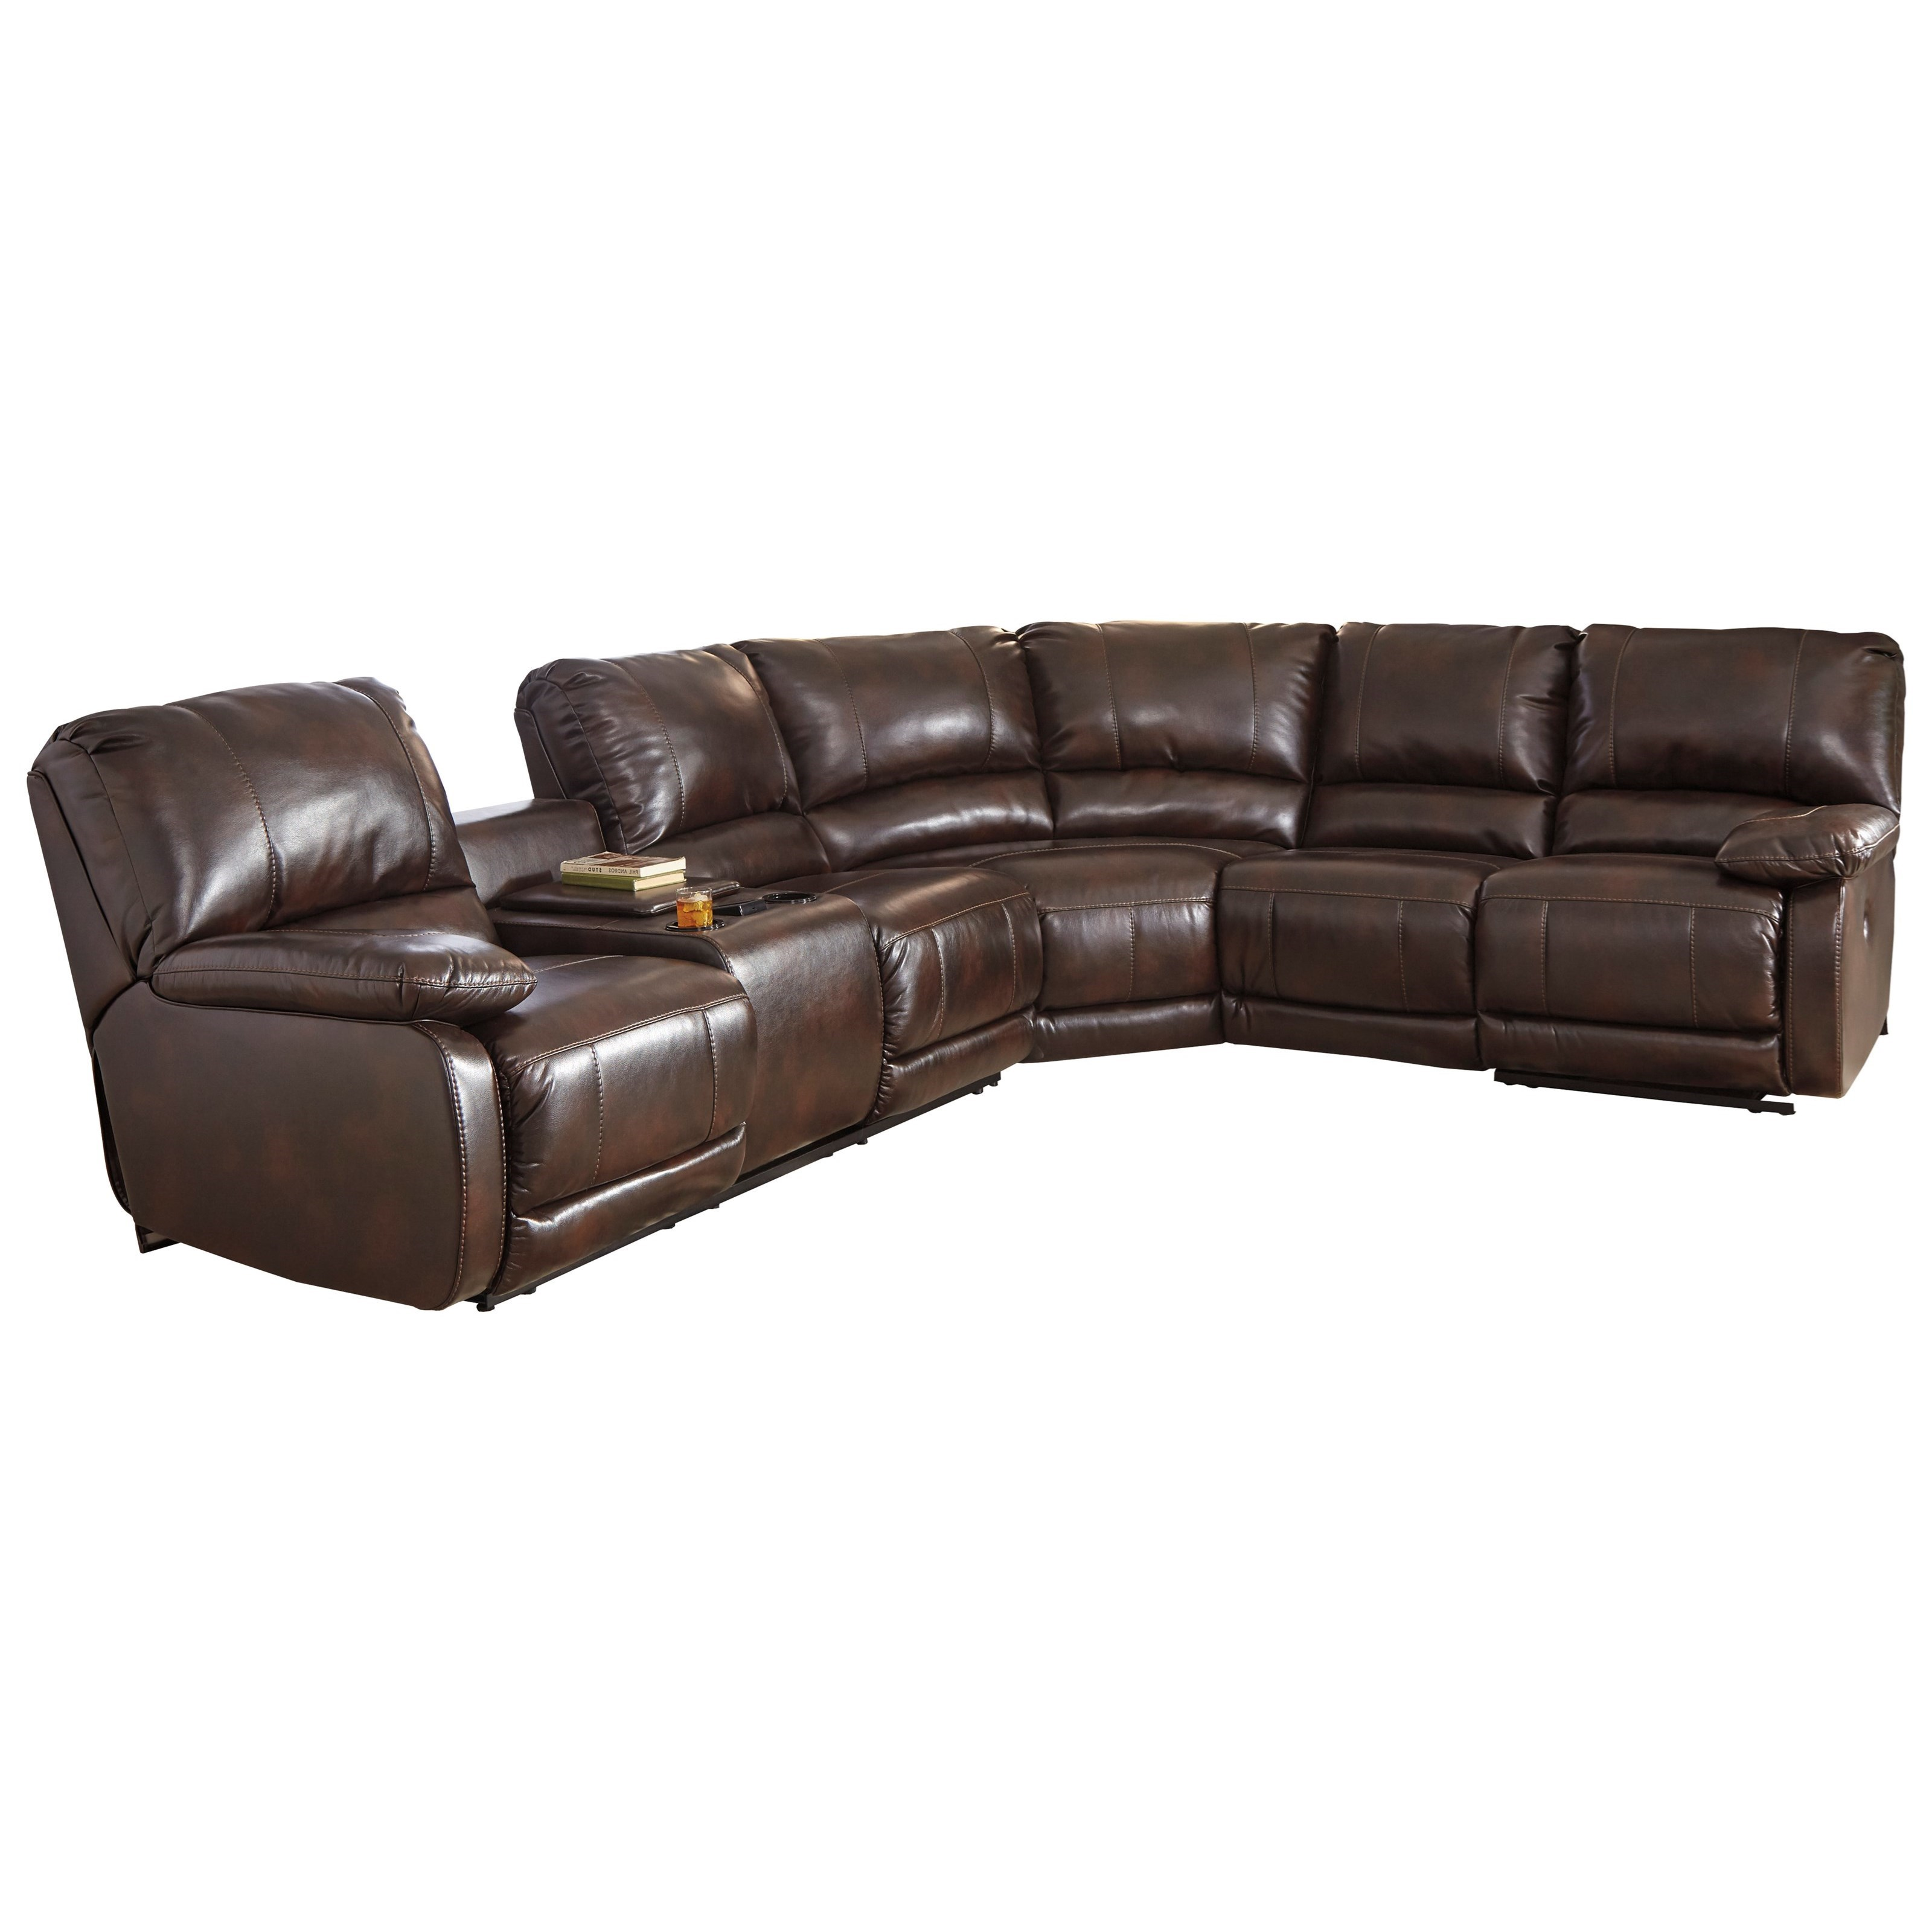 Signature Design By Ashley Hallettsville Power Reclining Sectional With Massage Heat And Cup